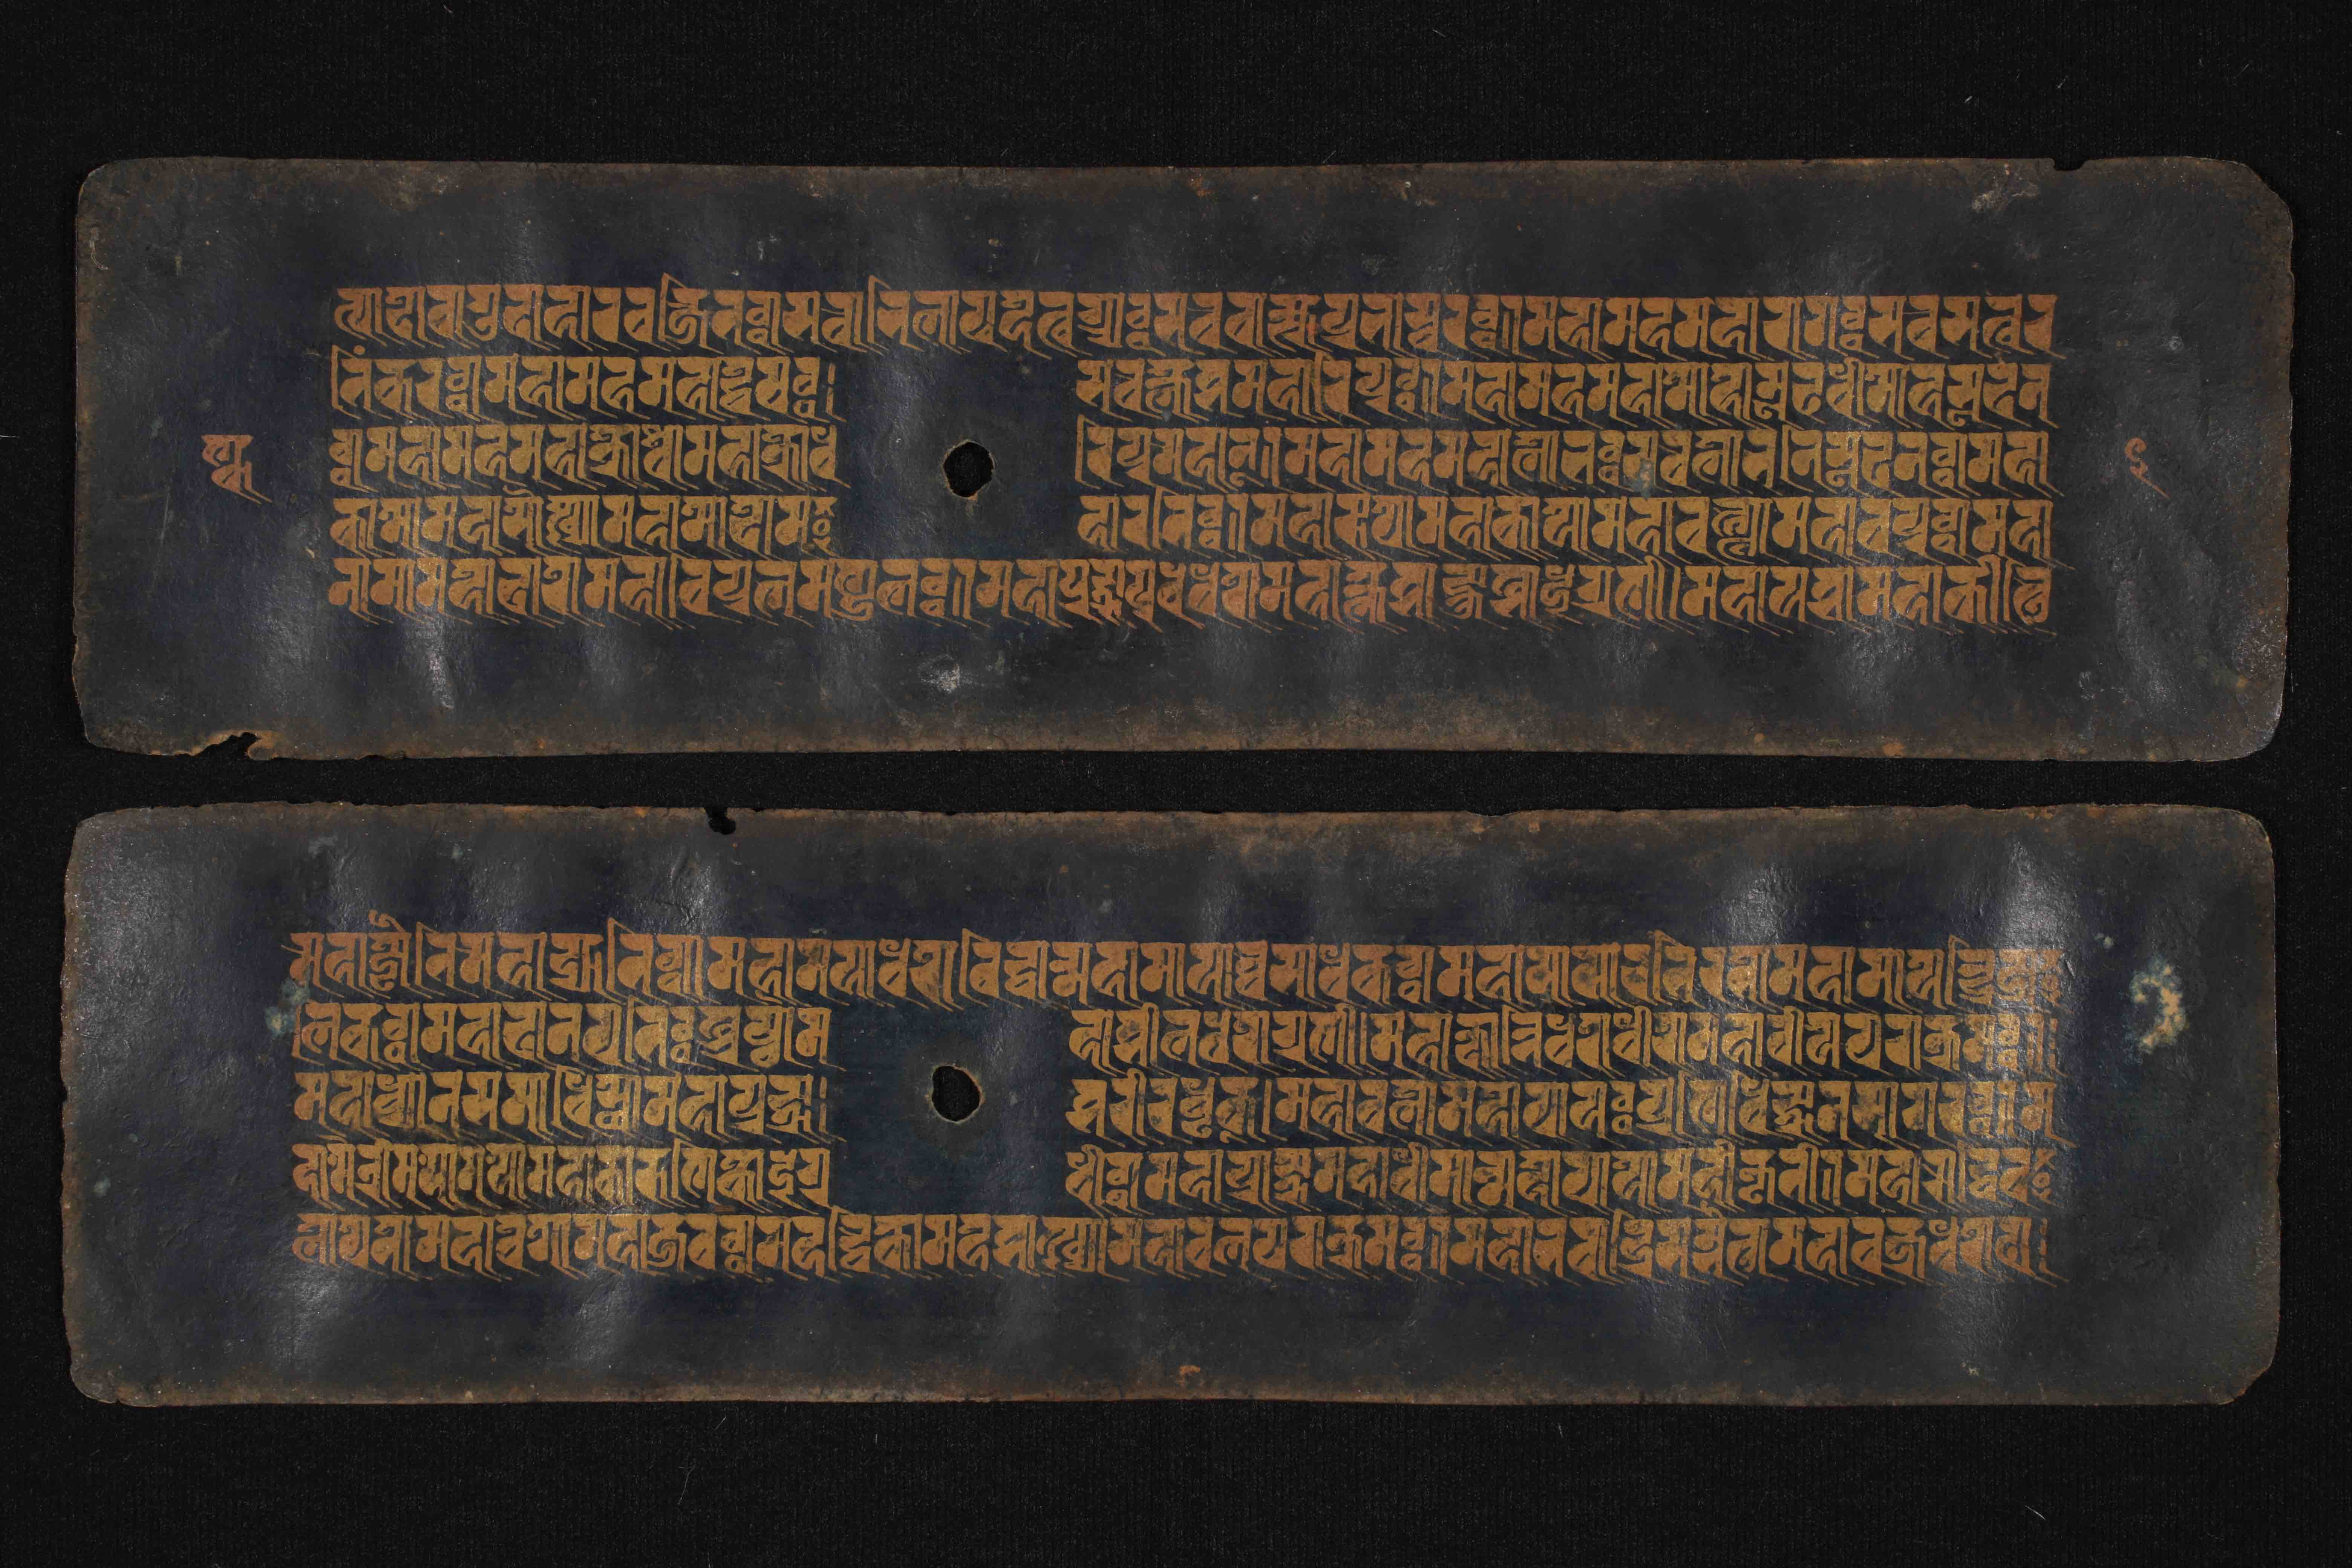 Buddhist manuscript from the Āśā Archives, Kathmandu, Nepal, containing the Nāmasaṃgīti, written with golden ink in Rañjanā script on Nīlapatra ('black paper'), dating approximately to the 17th c. (DPN 3922)